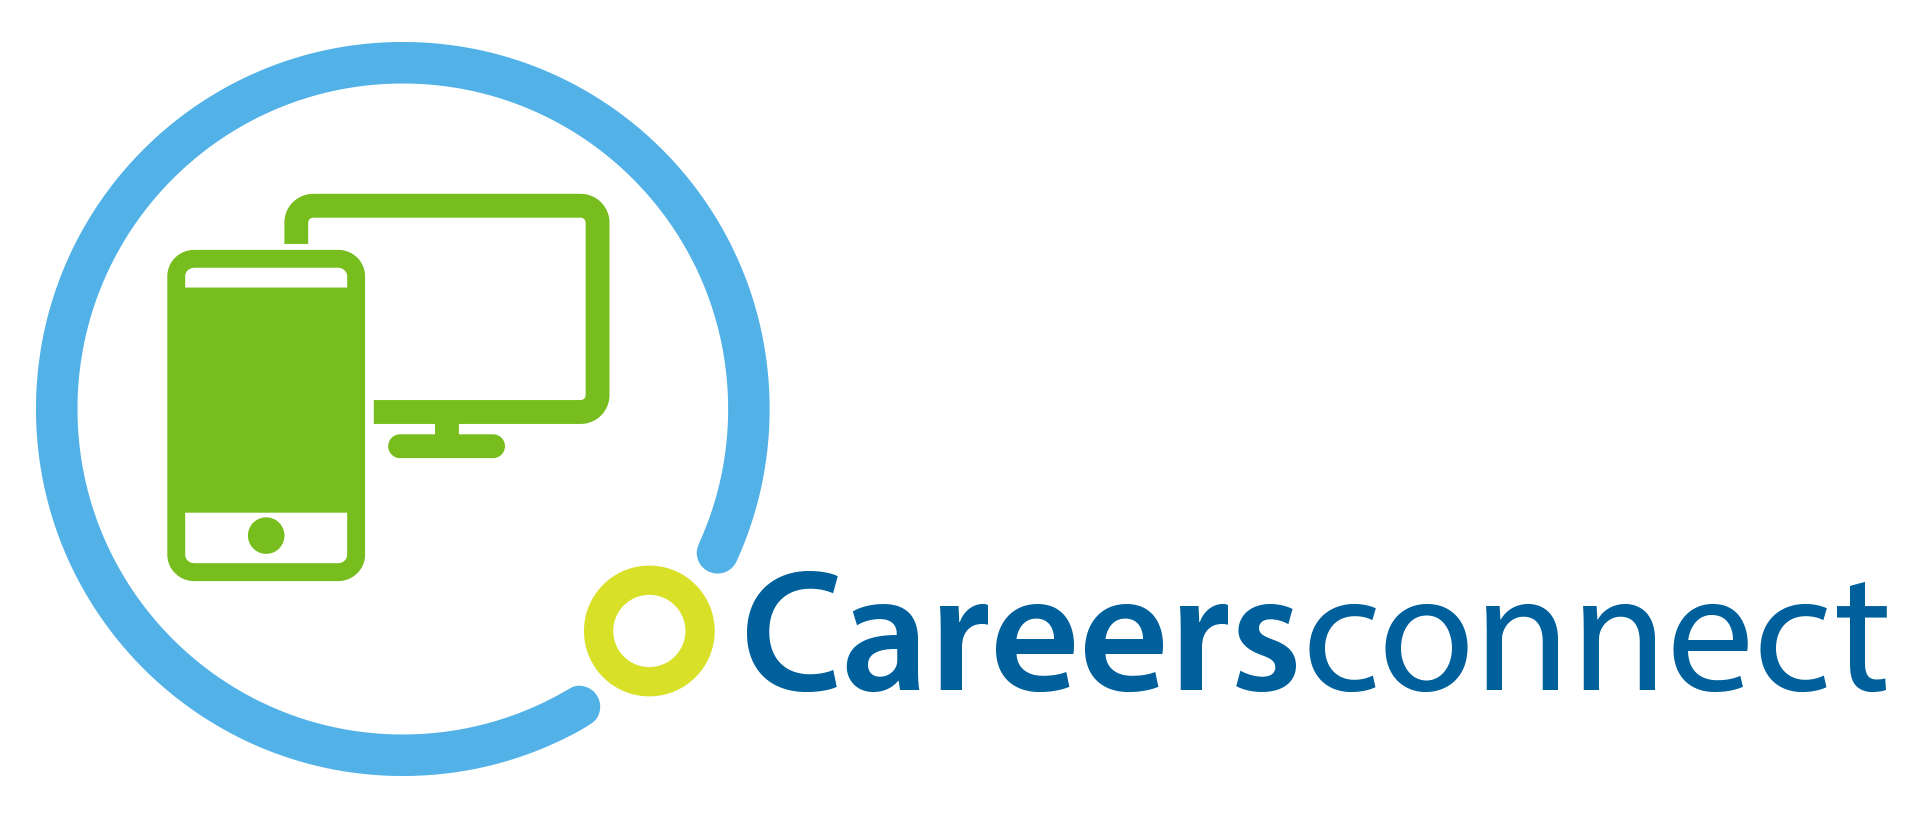 Careersconnect_Logo.png